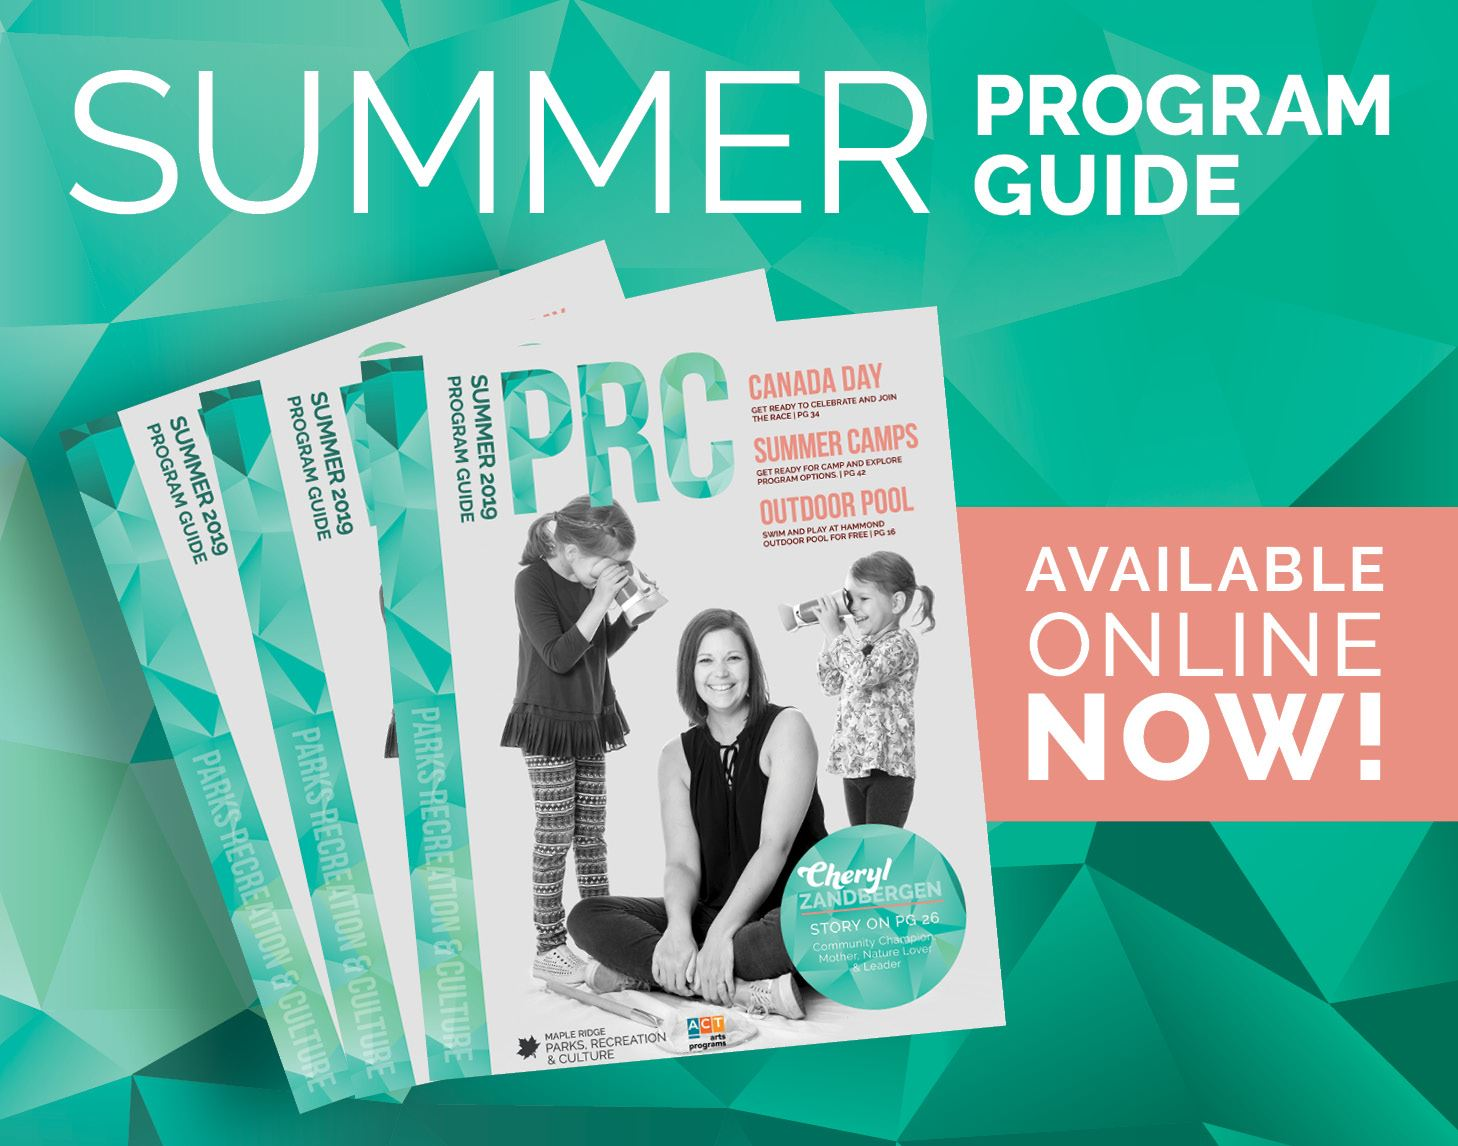 Summer Guide Available Online_NewsFlash_350x275